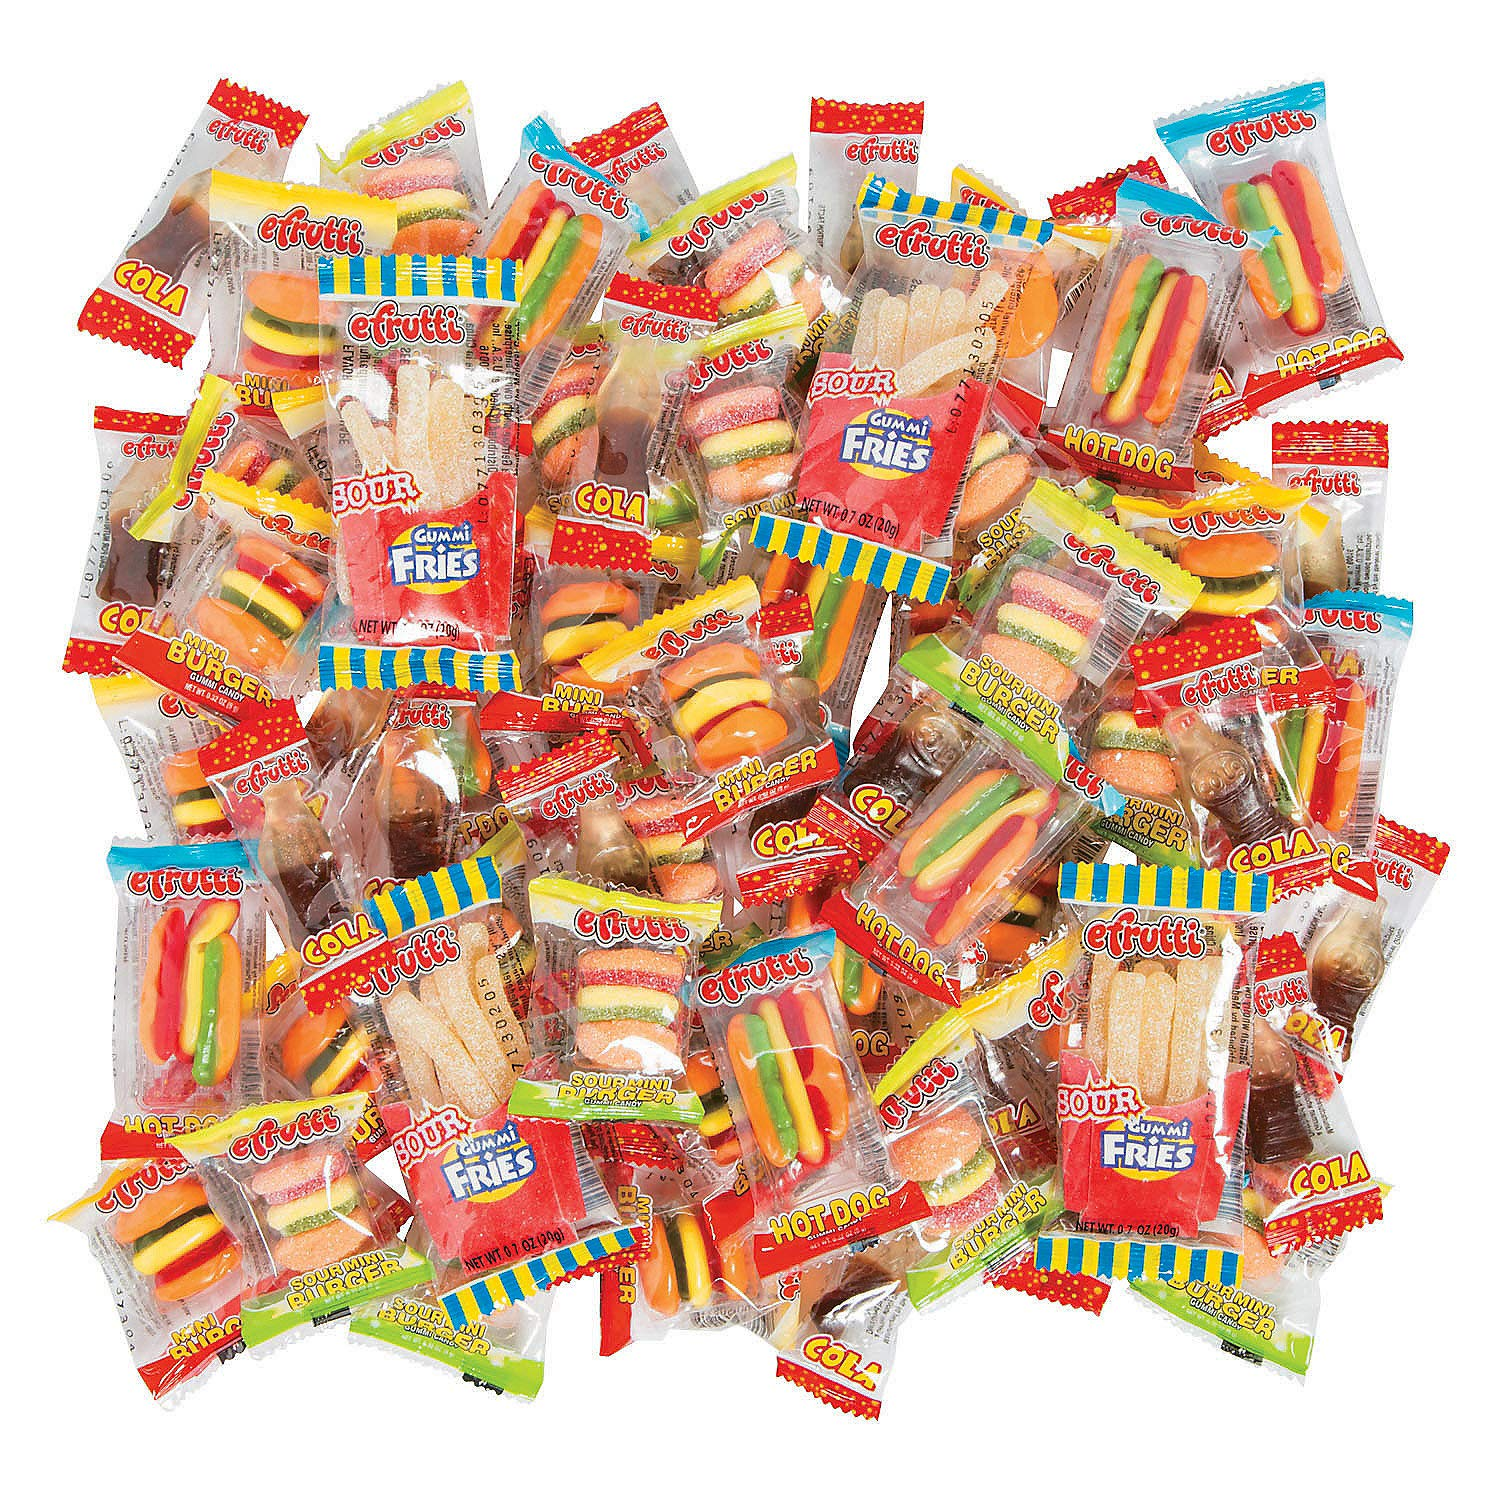 eFrutti Hot dogs, Hamburgers and Cola Gummy Candy Mega Mix - 70 pieces